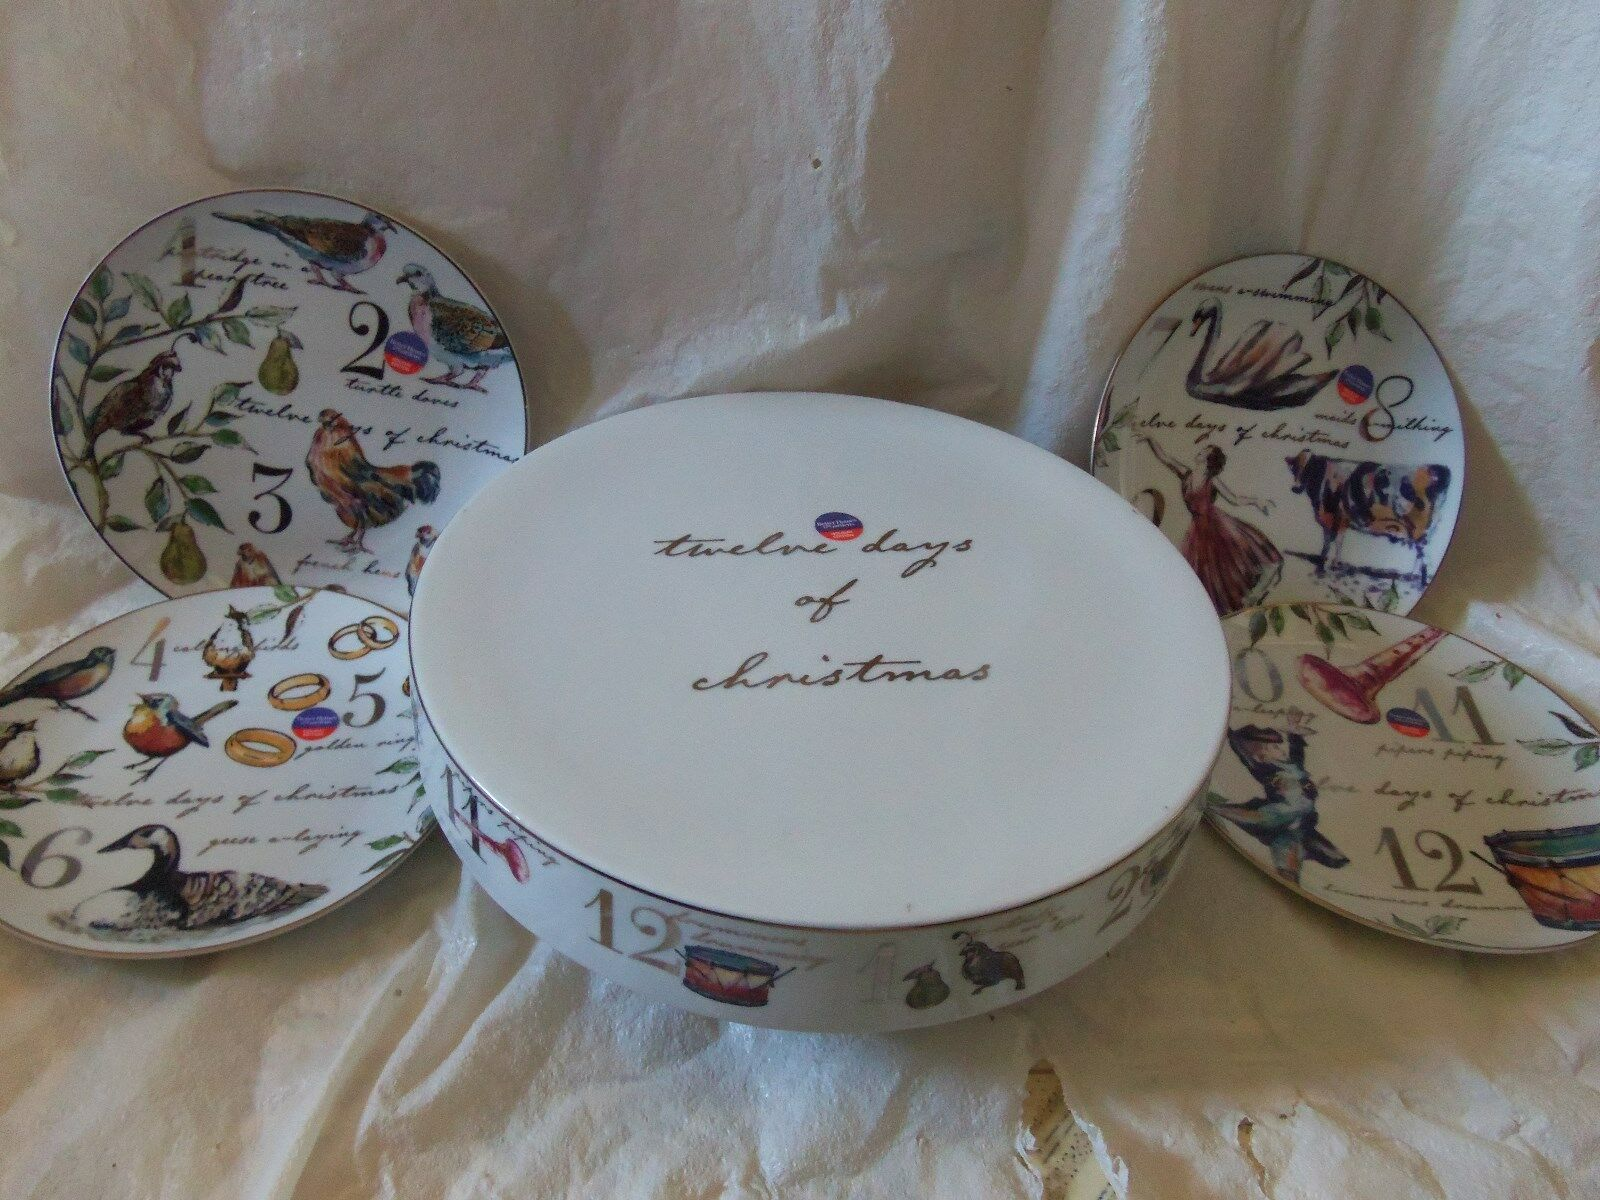 Better Homes & Gardens 12 Days Of Christmas Cake plate Stand & 4 Plates